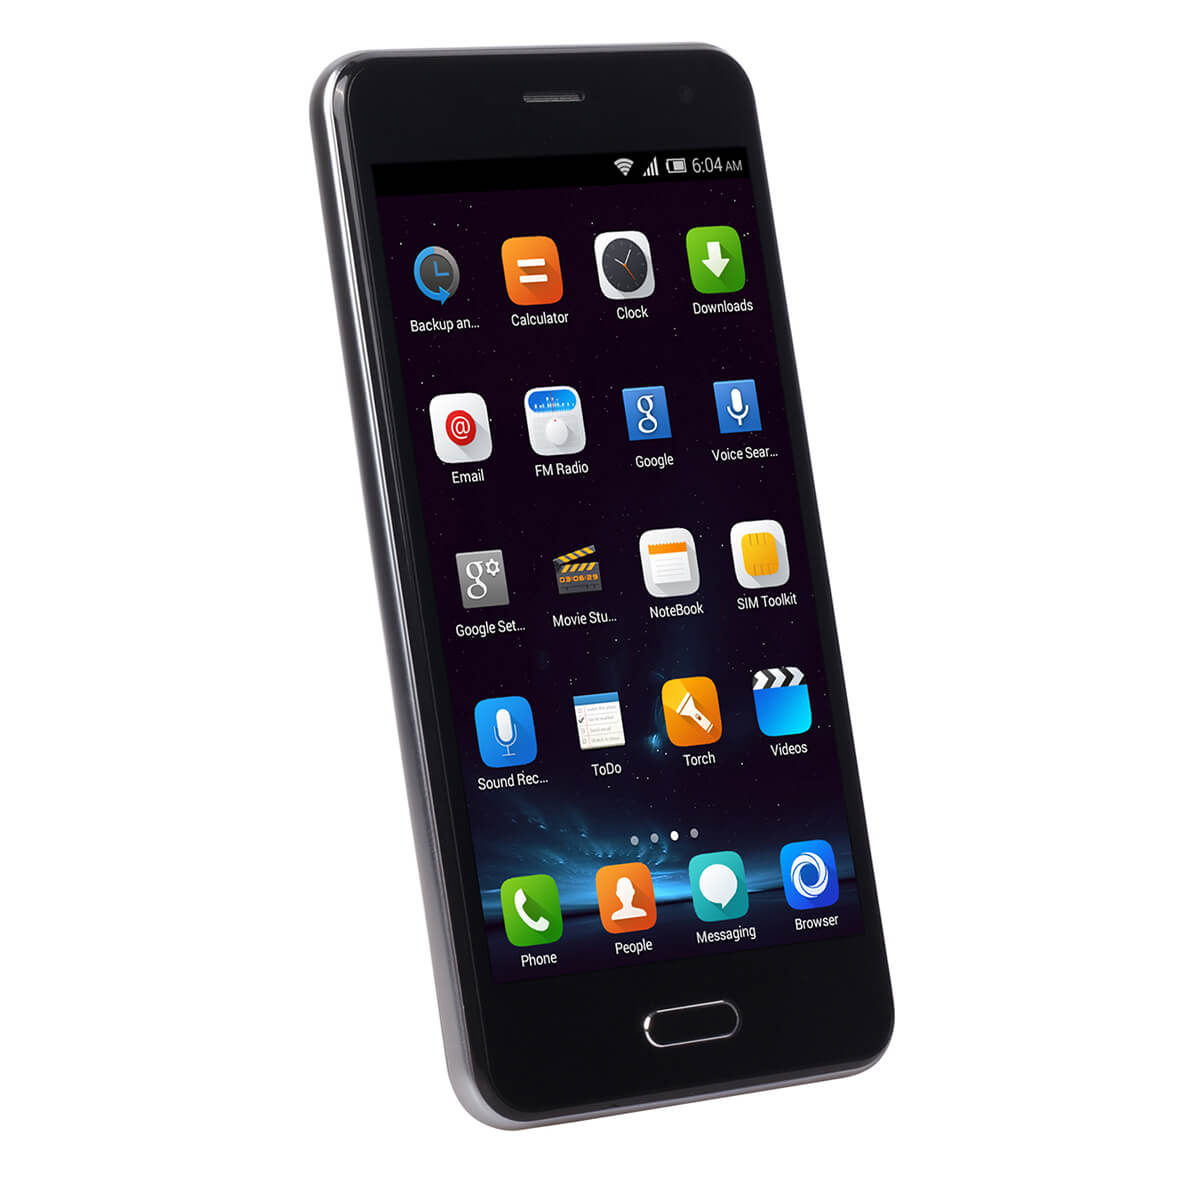 Elephone P5000: the Smartphone that Has Battery-Monster!